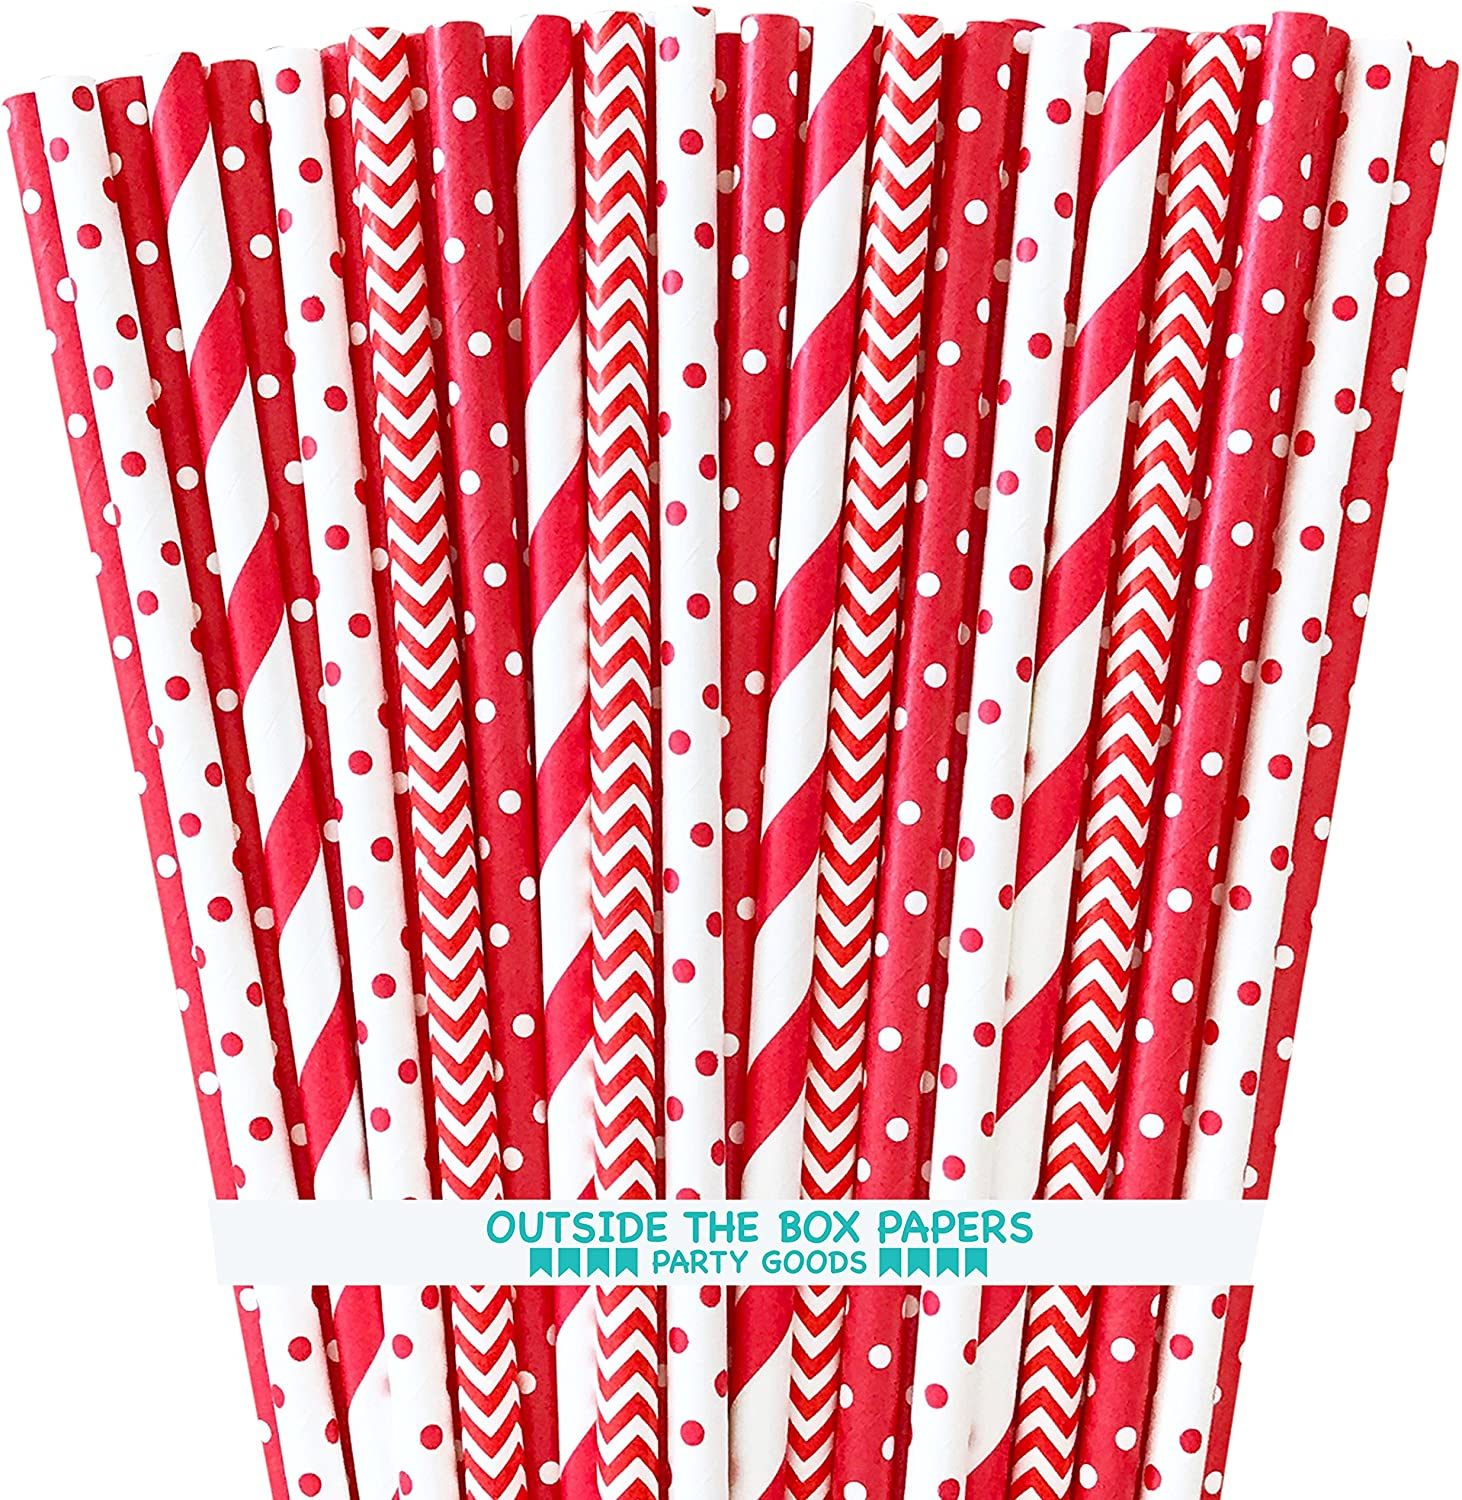 Paper Drinking Straws - Red and White - Stripe Chevron Polka Dot - 7.75 Inches - 100 Pack Outside the Box Papers Brand